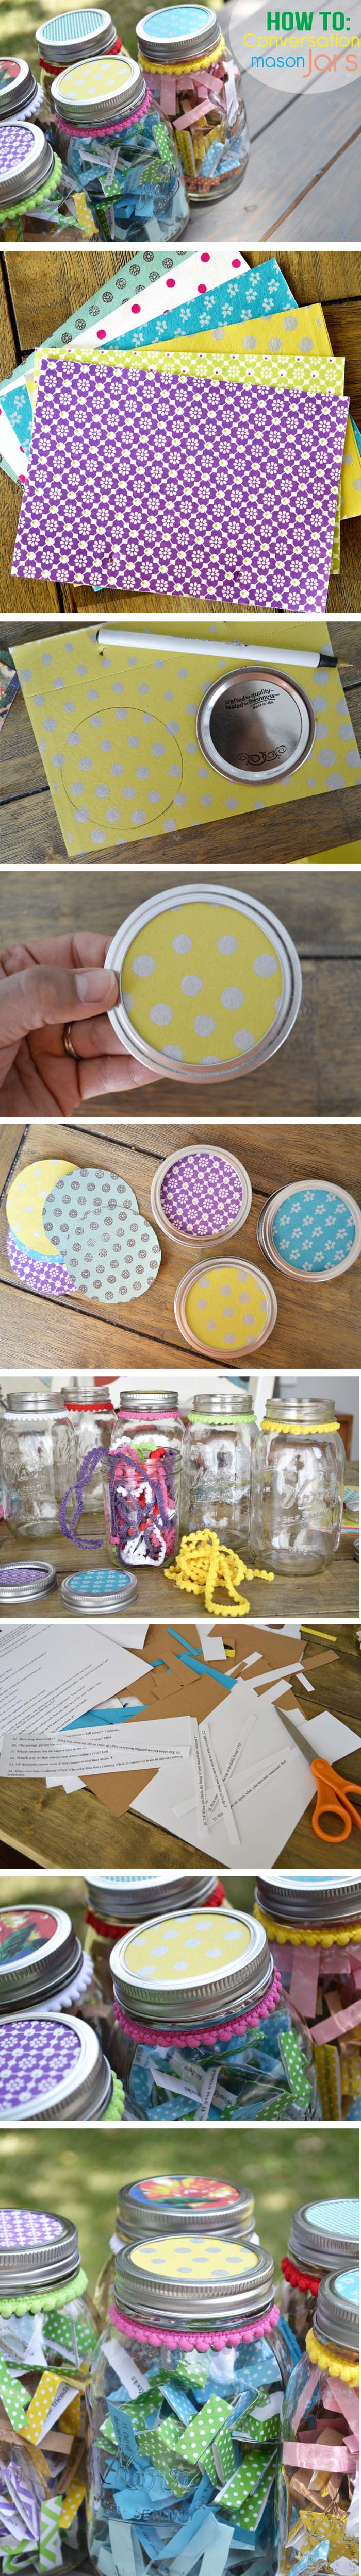 how to make conversation jars collage